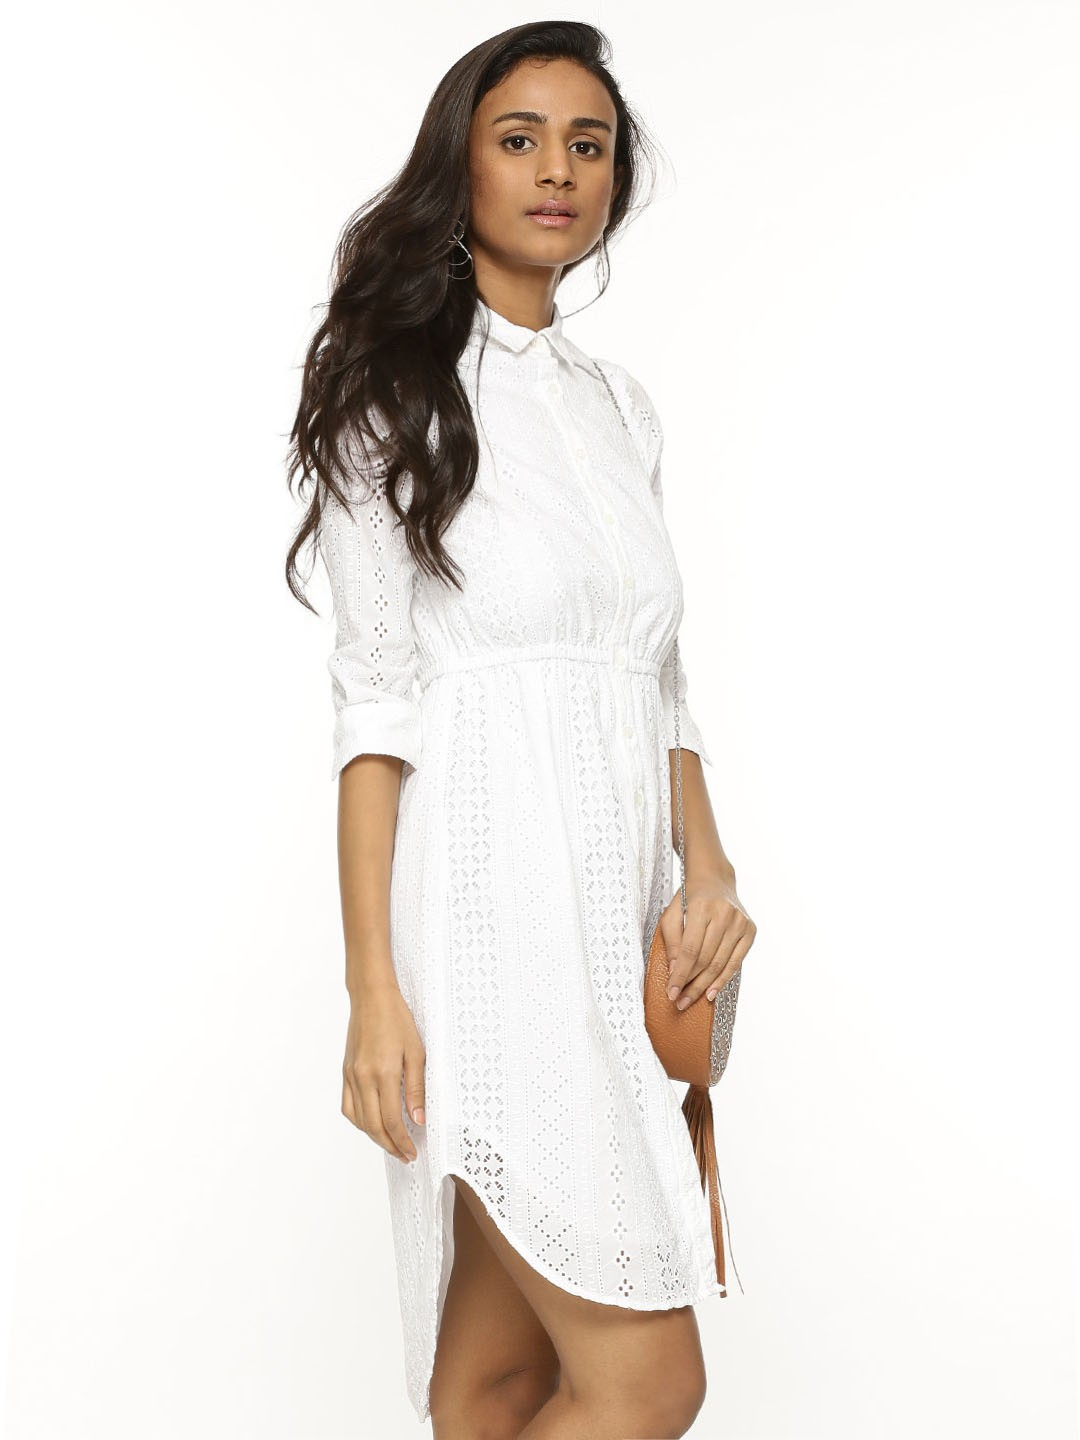 Buy sbuys schiffli shirt dress for women women 39 s white for Buy white dress shirt